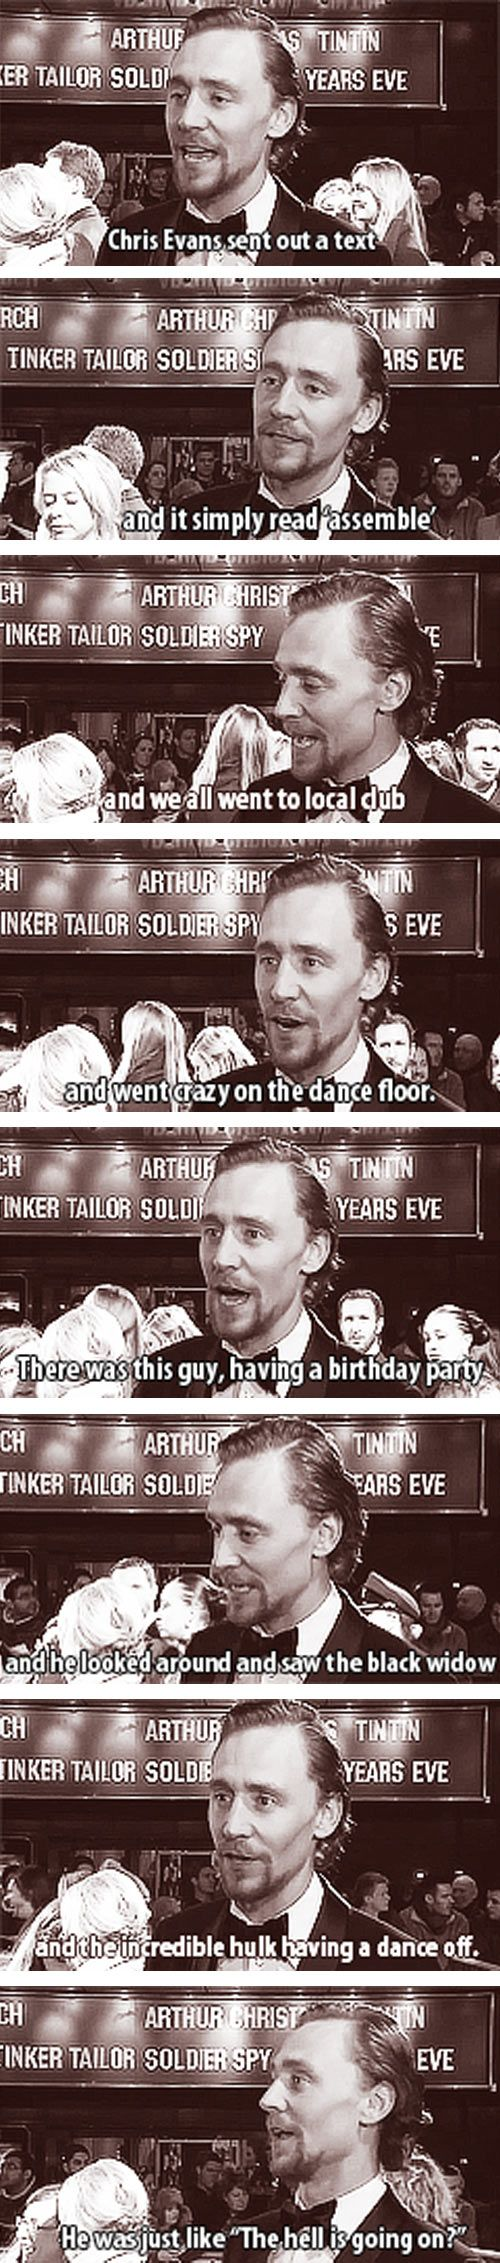 SOUNDS LIKE THE BEST BIRTHDAY EVER!! Funny Tom Hiddleston: When Avengers assemble!